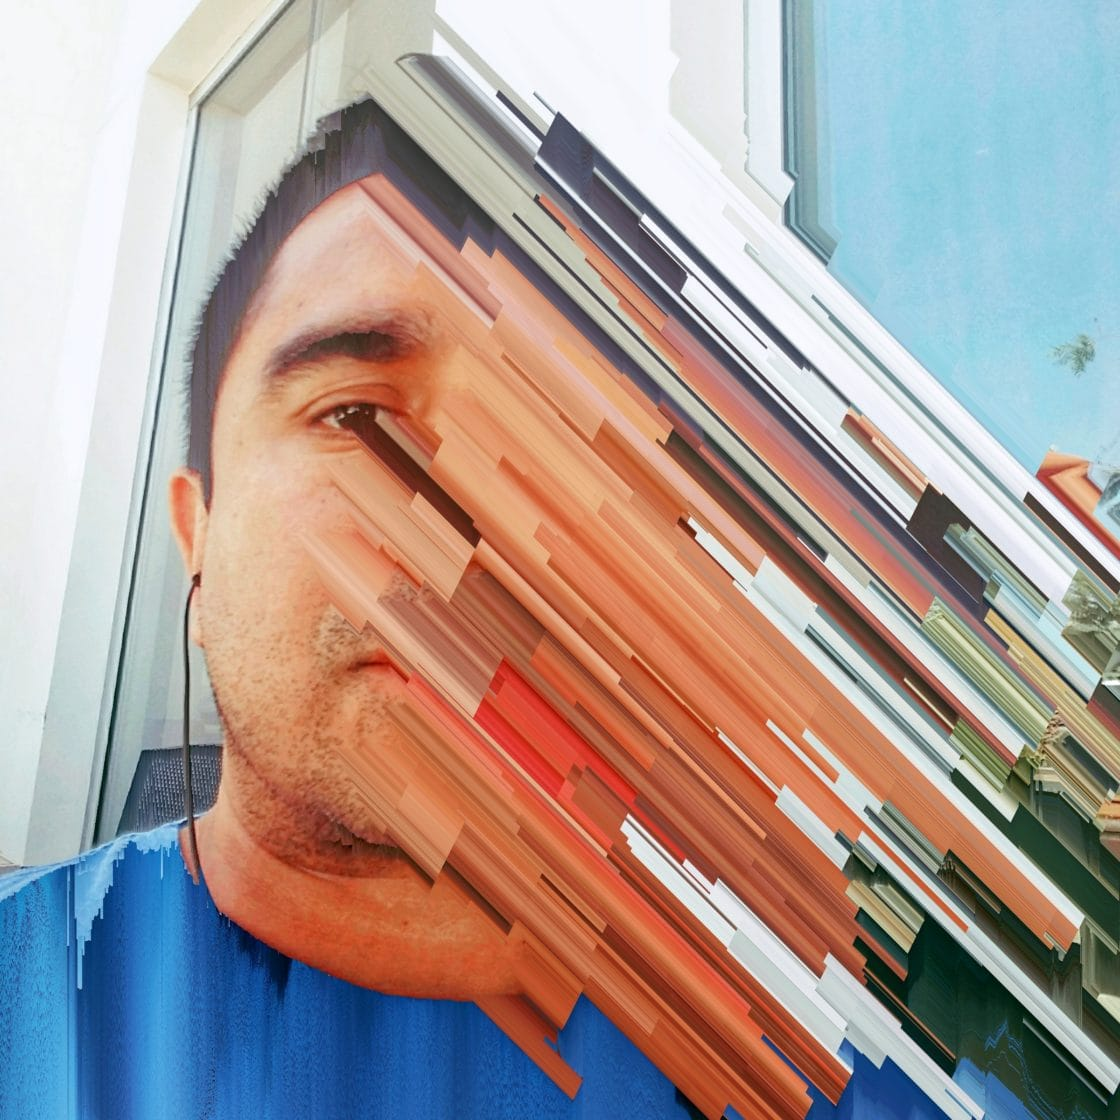 glitched-self-portraits-victor-ruano-santasombra-000